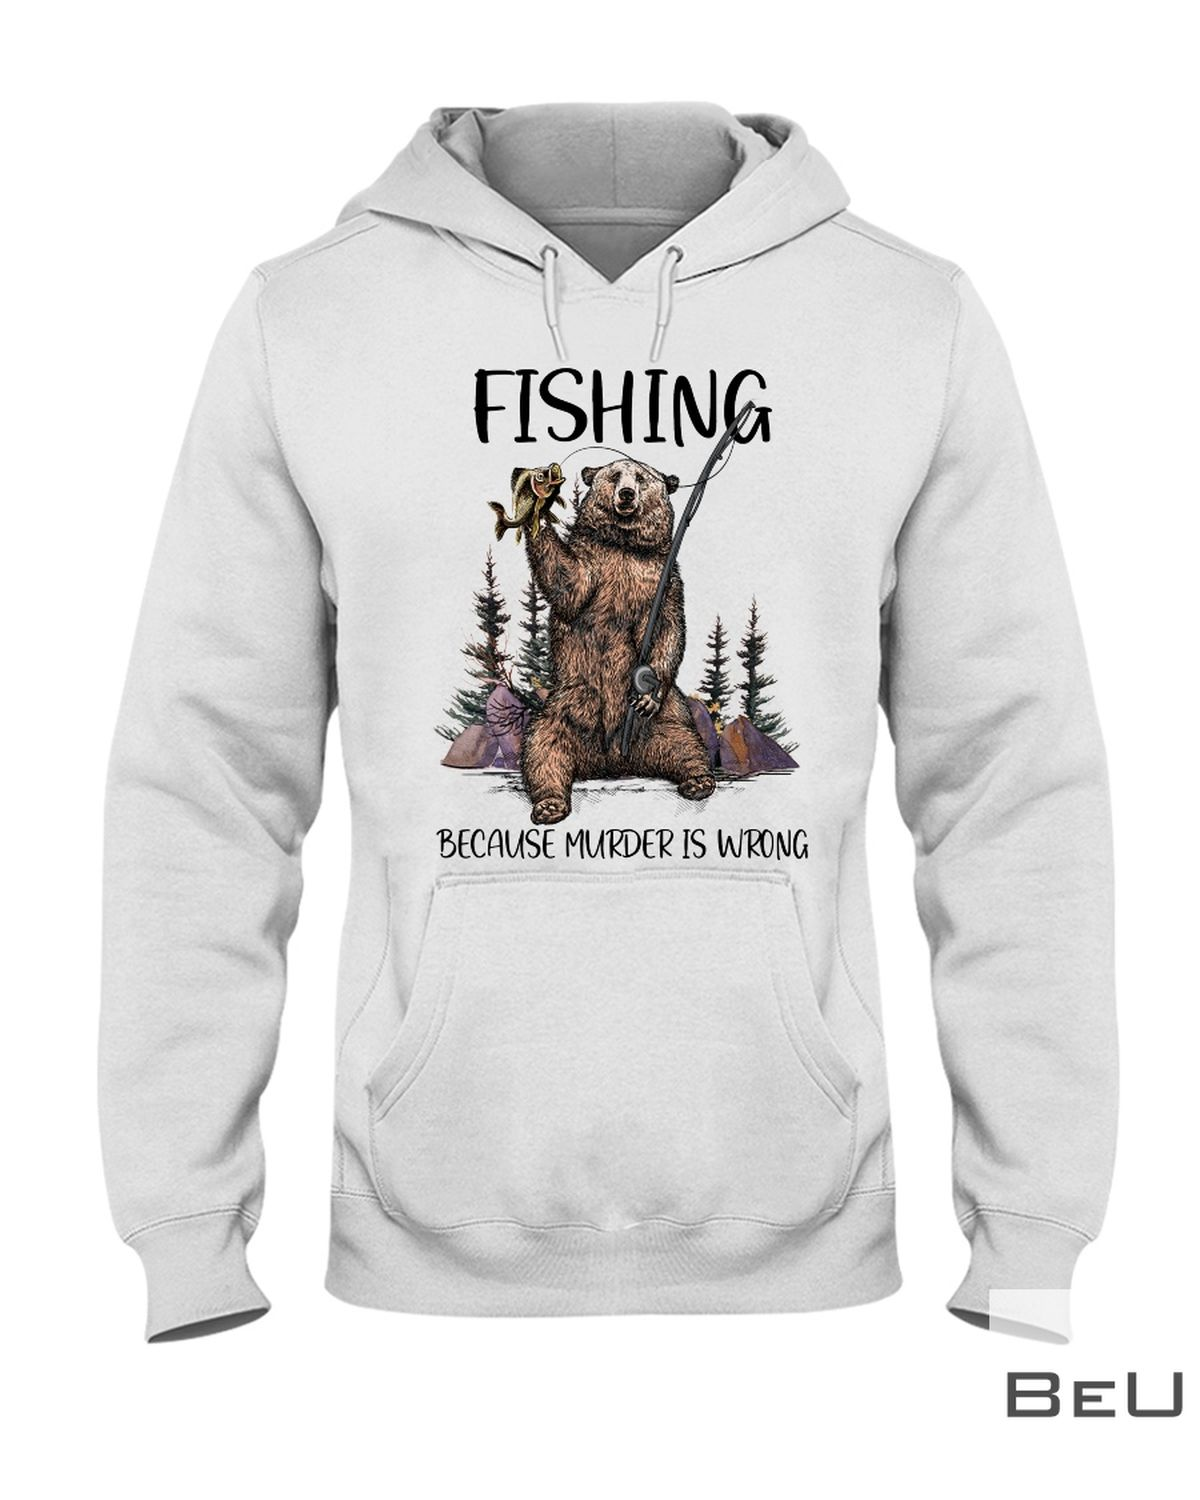 Fishing Because Murder Is Wrong Shirtx